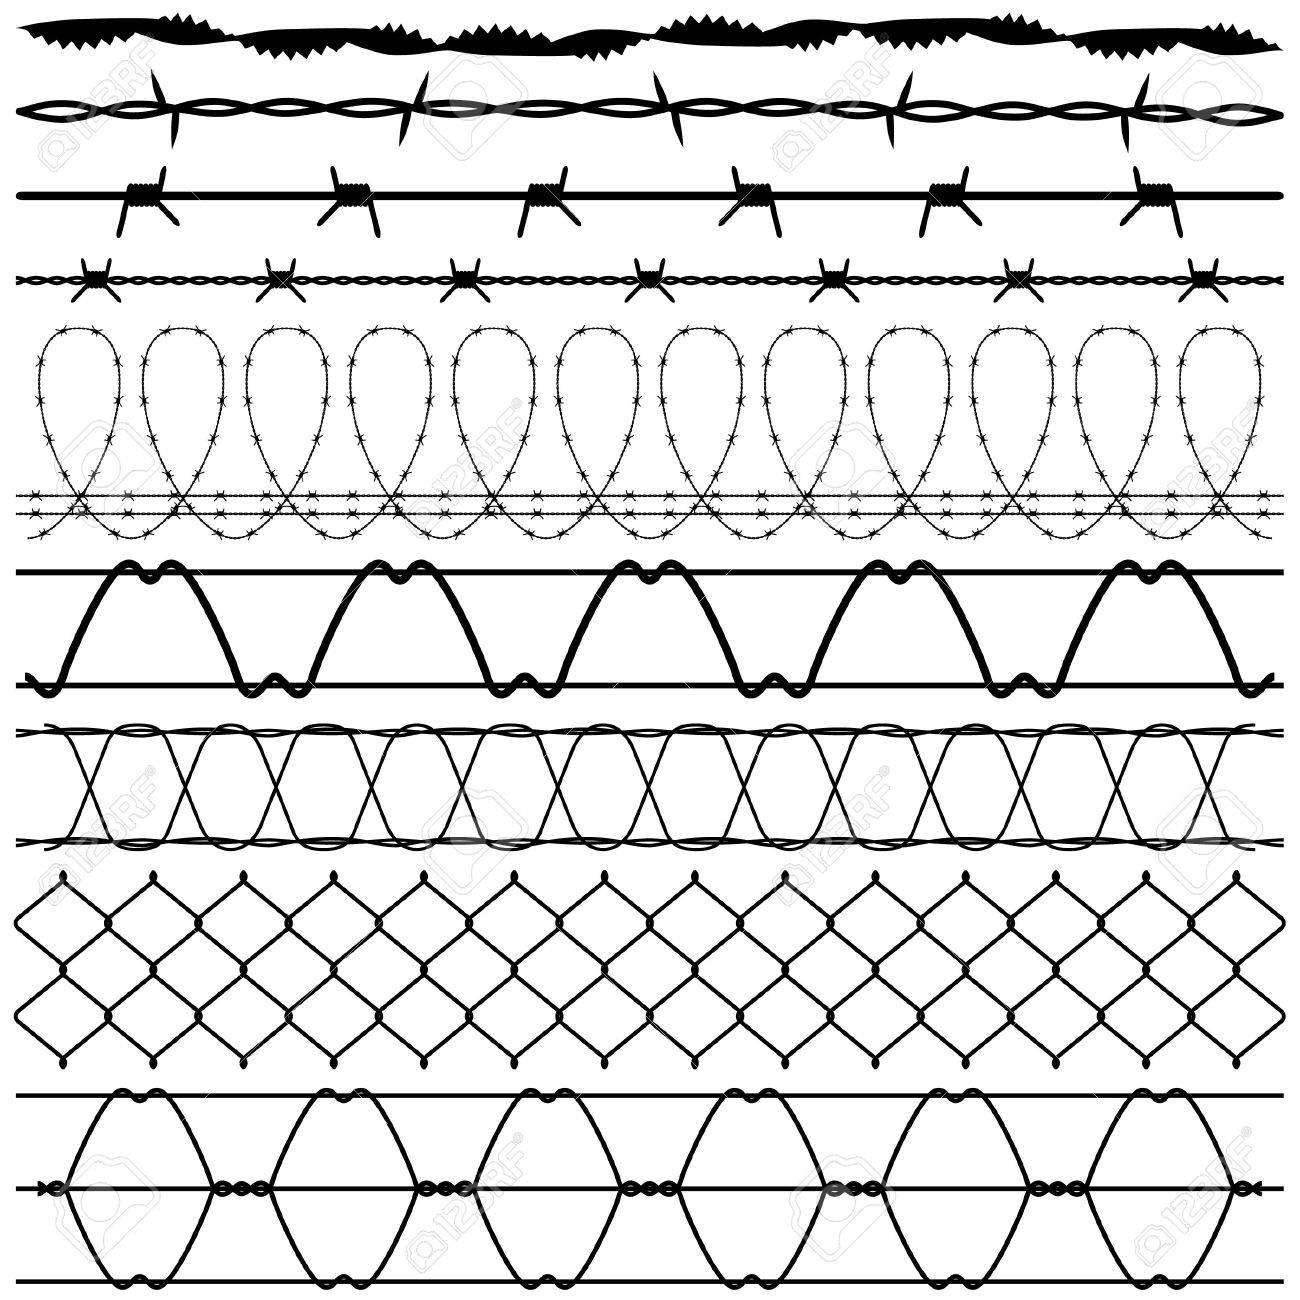 Awesome 11 Row Concertina Wire Illustration - Everything You Need to ...